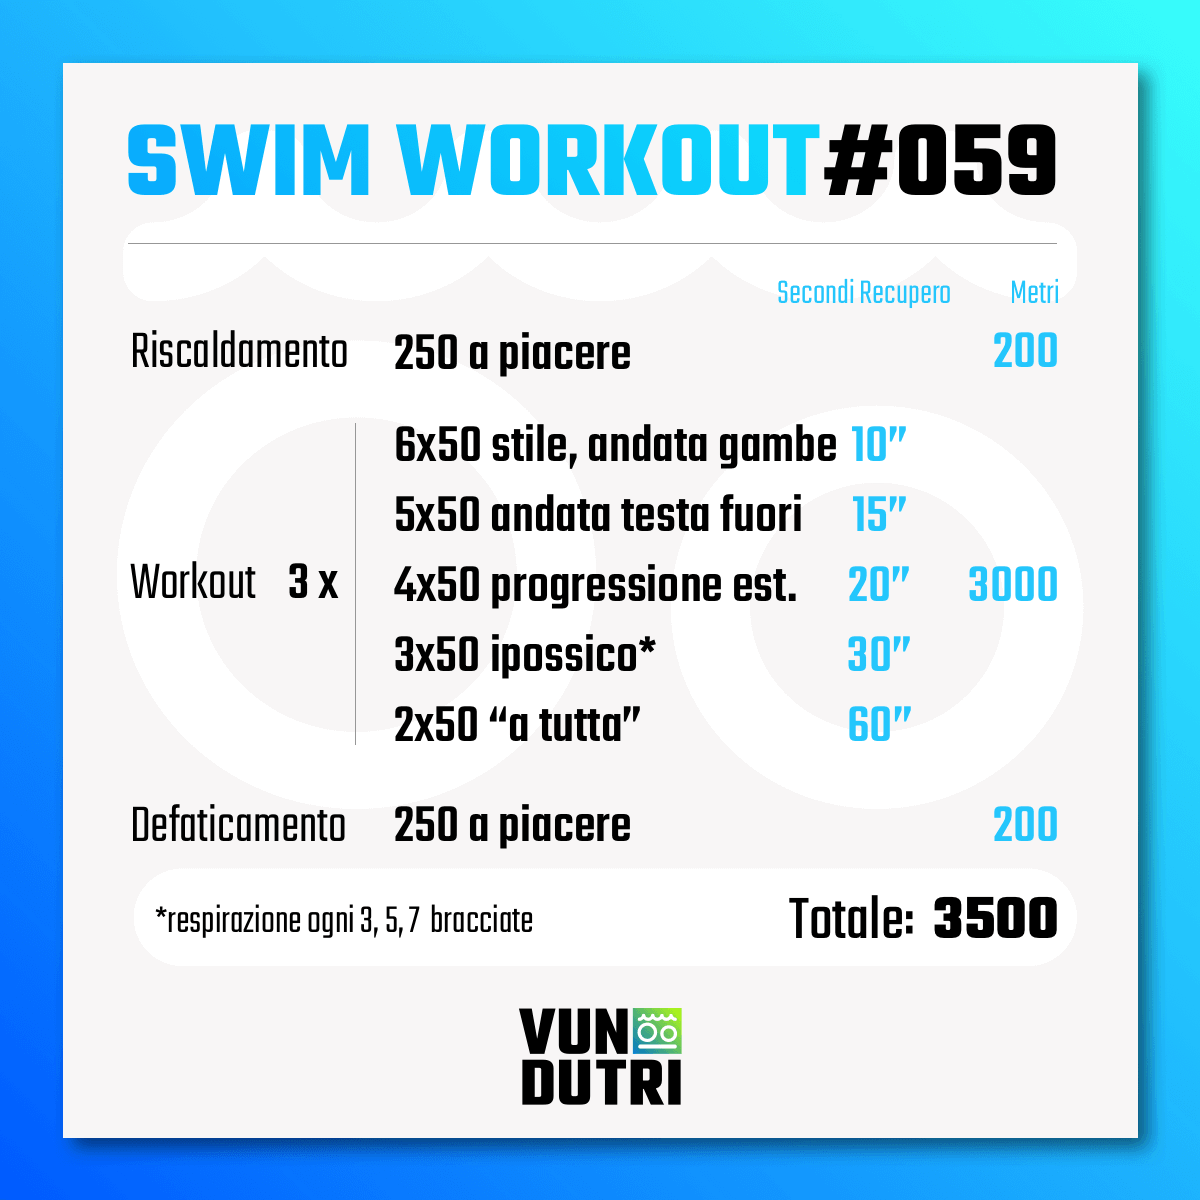 Swim workout 059